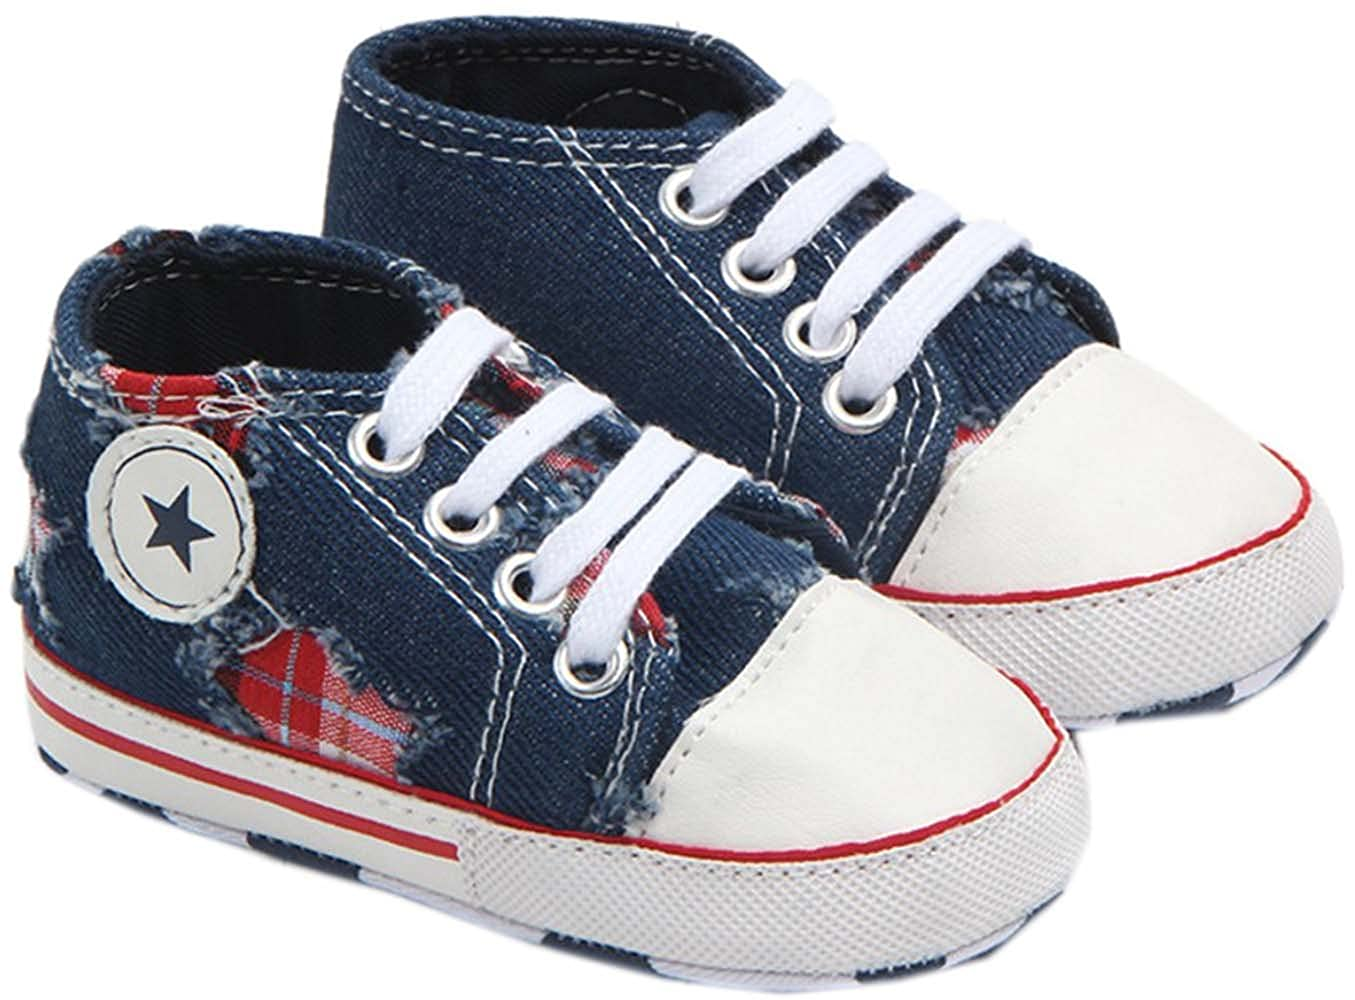 0-1 Year bettyhome Cotton Unisex Baby Newborn Navy Blue Ripped Jeans Canvas Soft Sole Infant Toddler Prewalker Sneakers